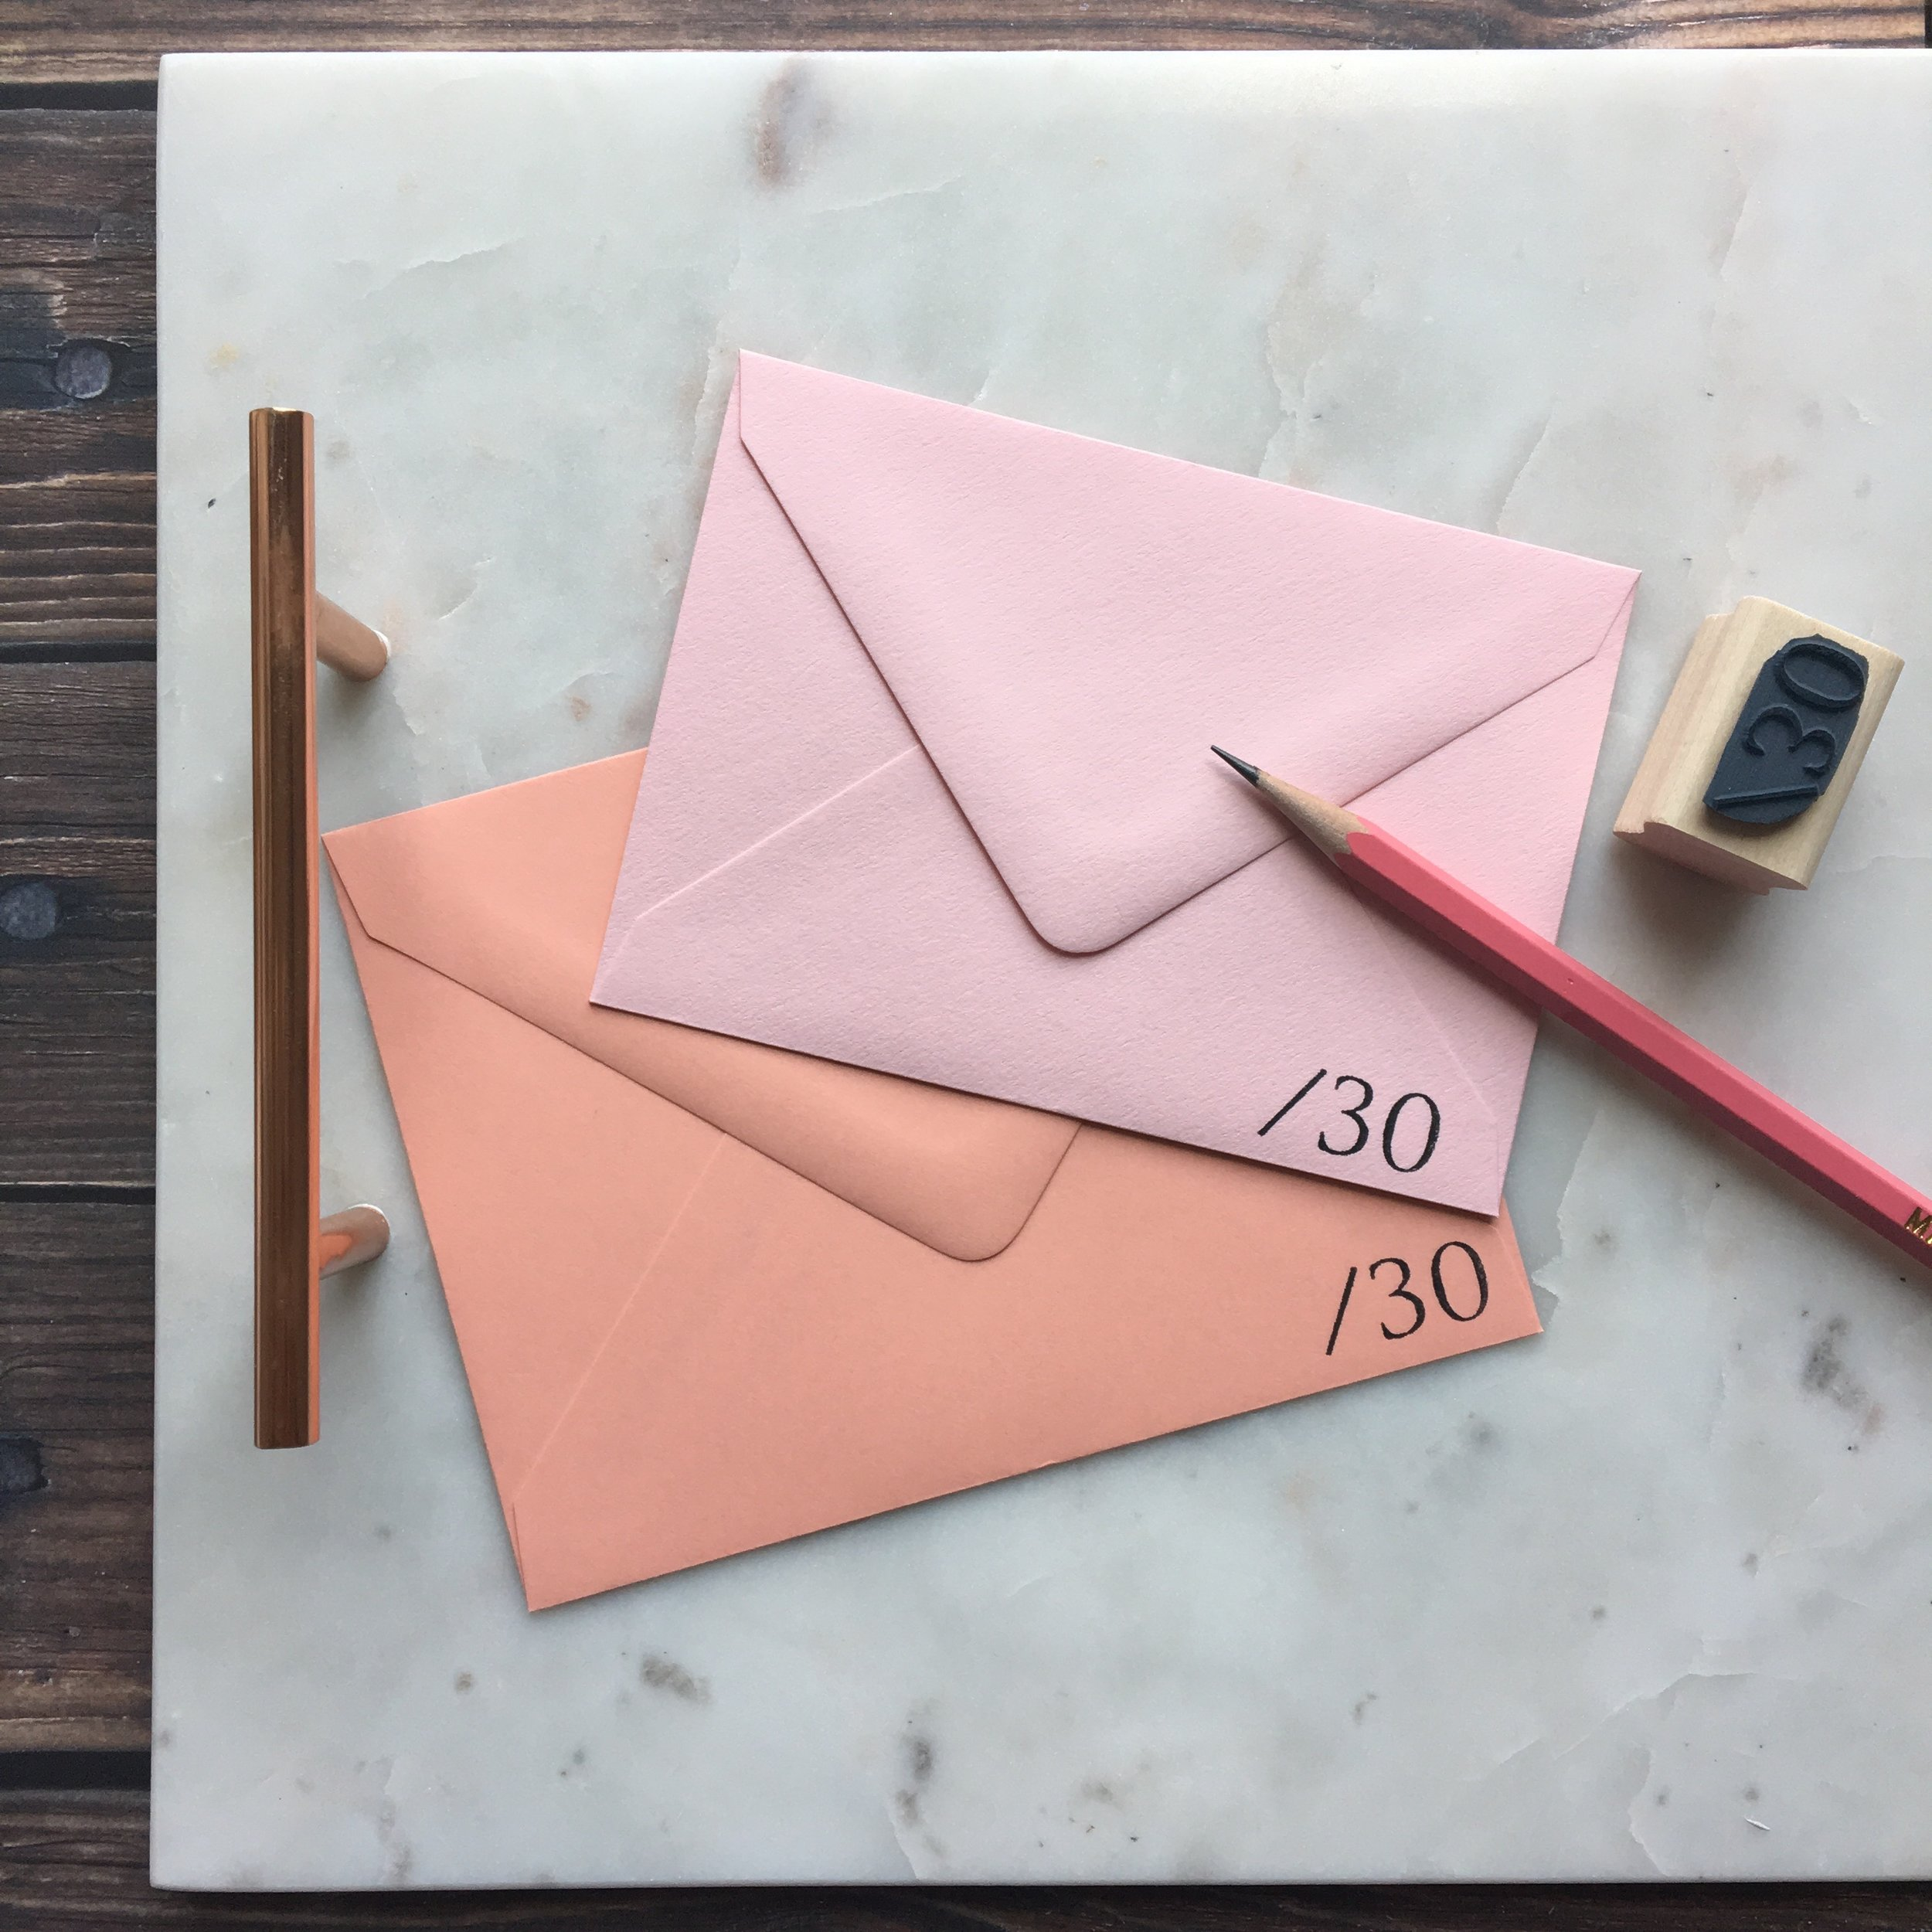 Mail More Love rubber stamp